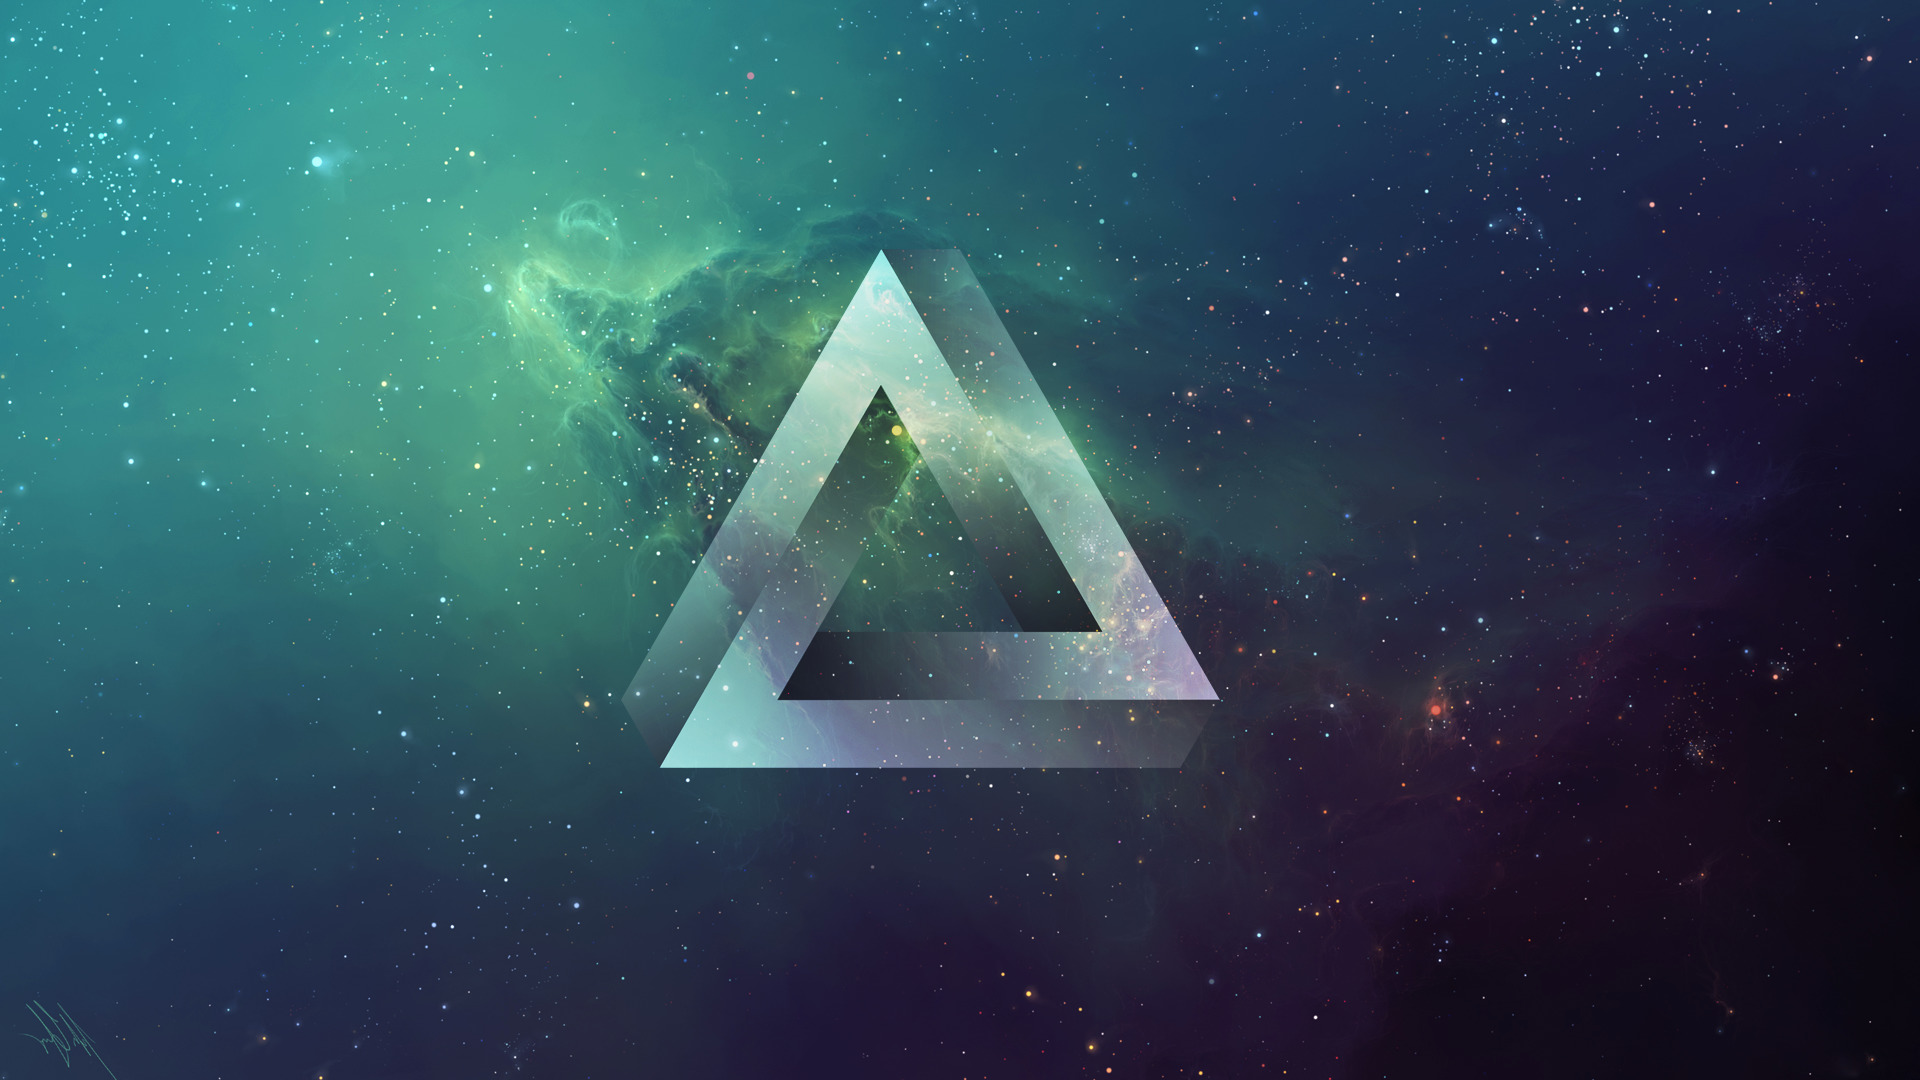 Gravity Falls Desktop Wallpaper Hd Triangle Space Tylercreatesworlds Penrose Triangle